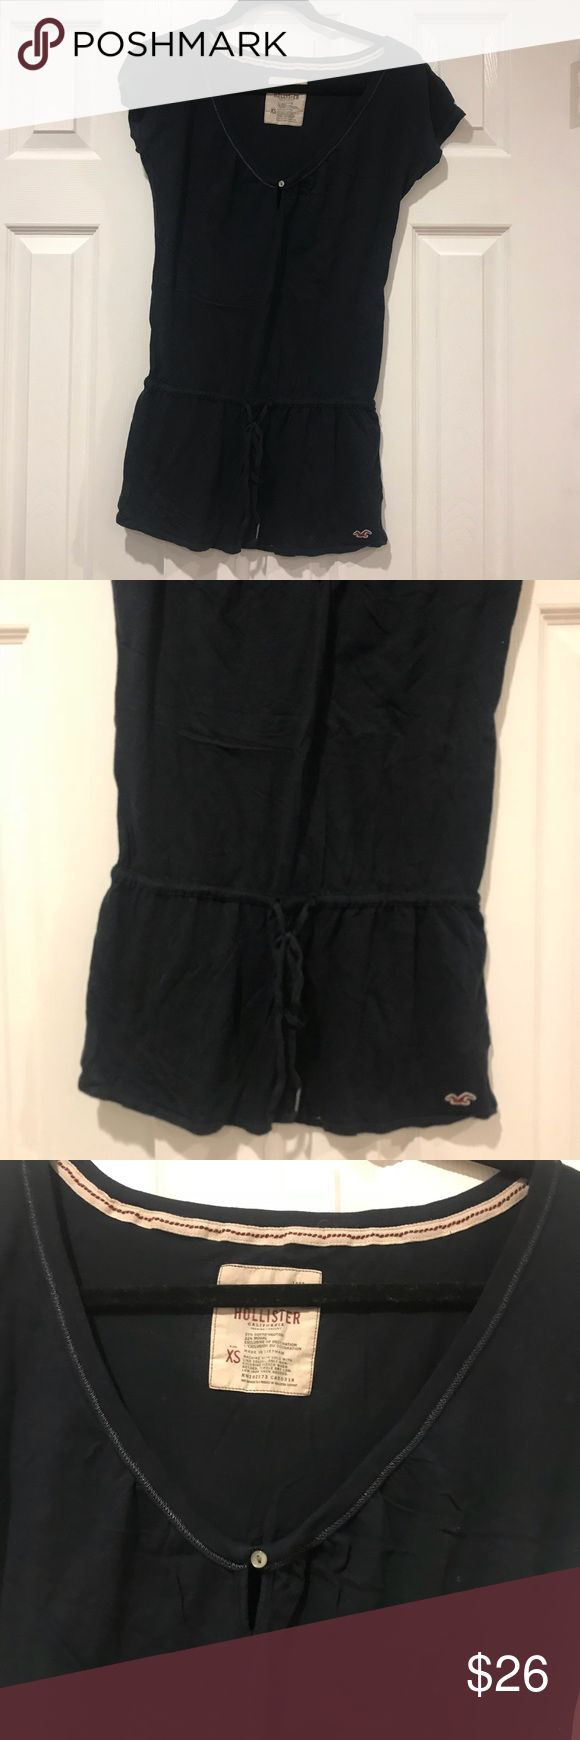 Hollister Navy Mini Dress Sz XS Good condition. Super cute dress. It is Mini. I wore it as a cover up for a bikini a couple of times. Hollister Dresses Mini